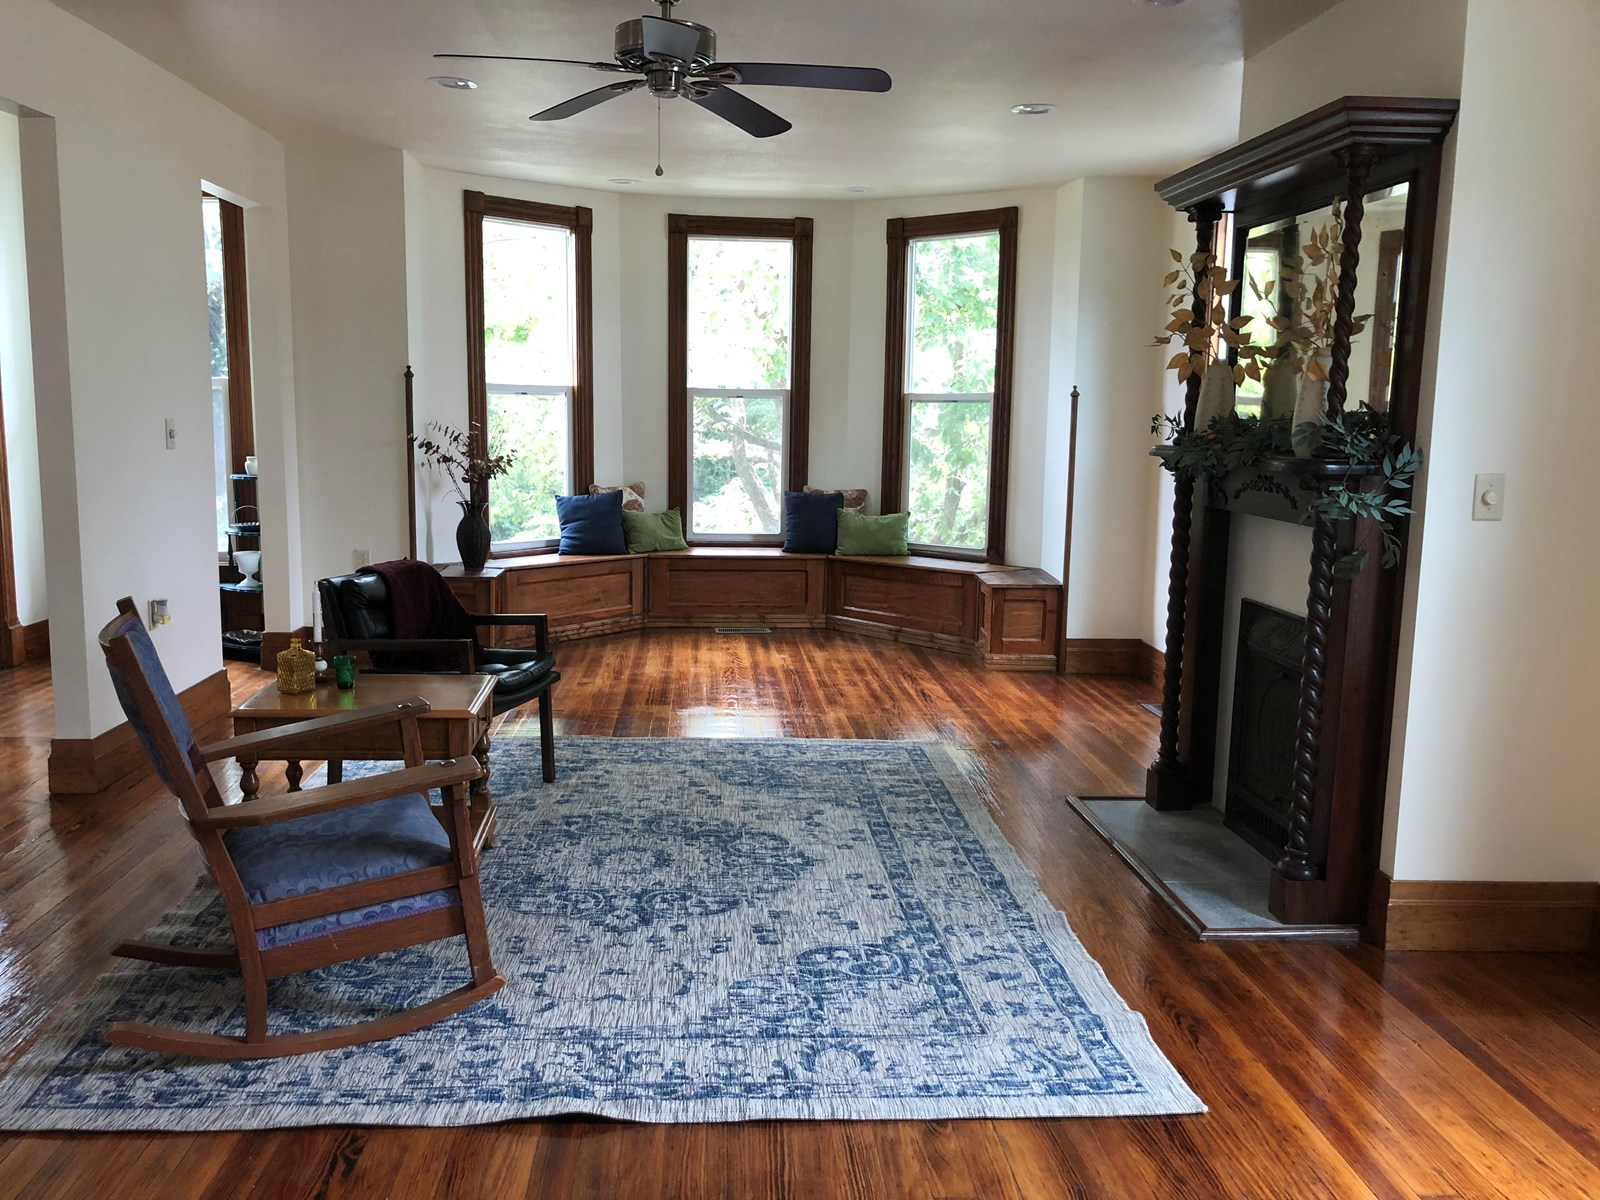 Restored Historic Home for Sale, 3 Bed / 2.5 Bath